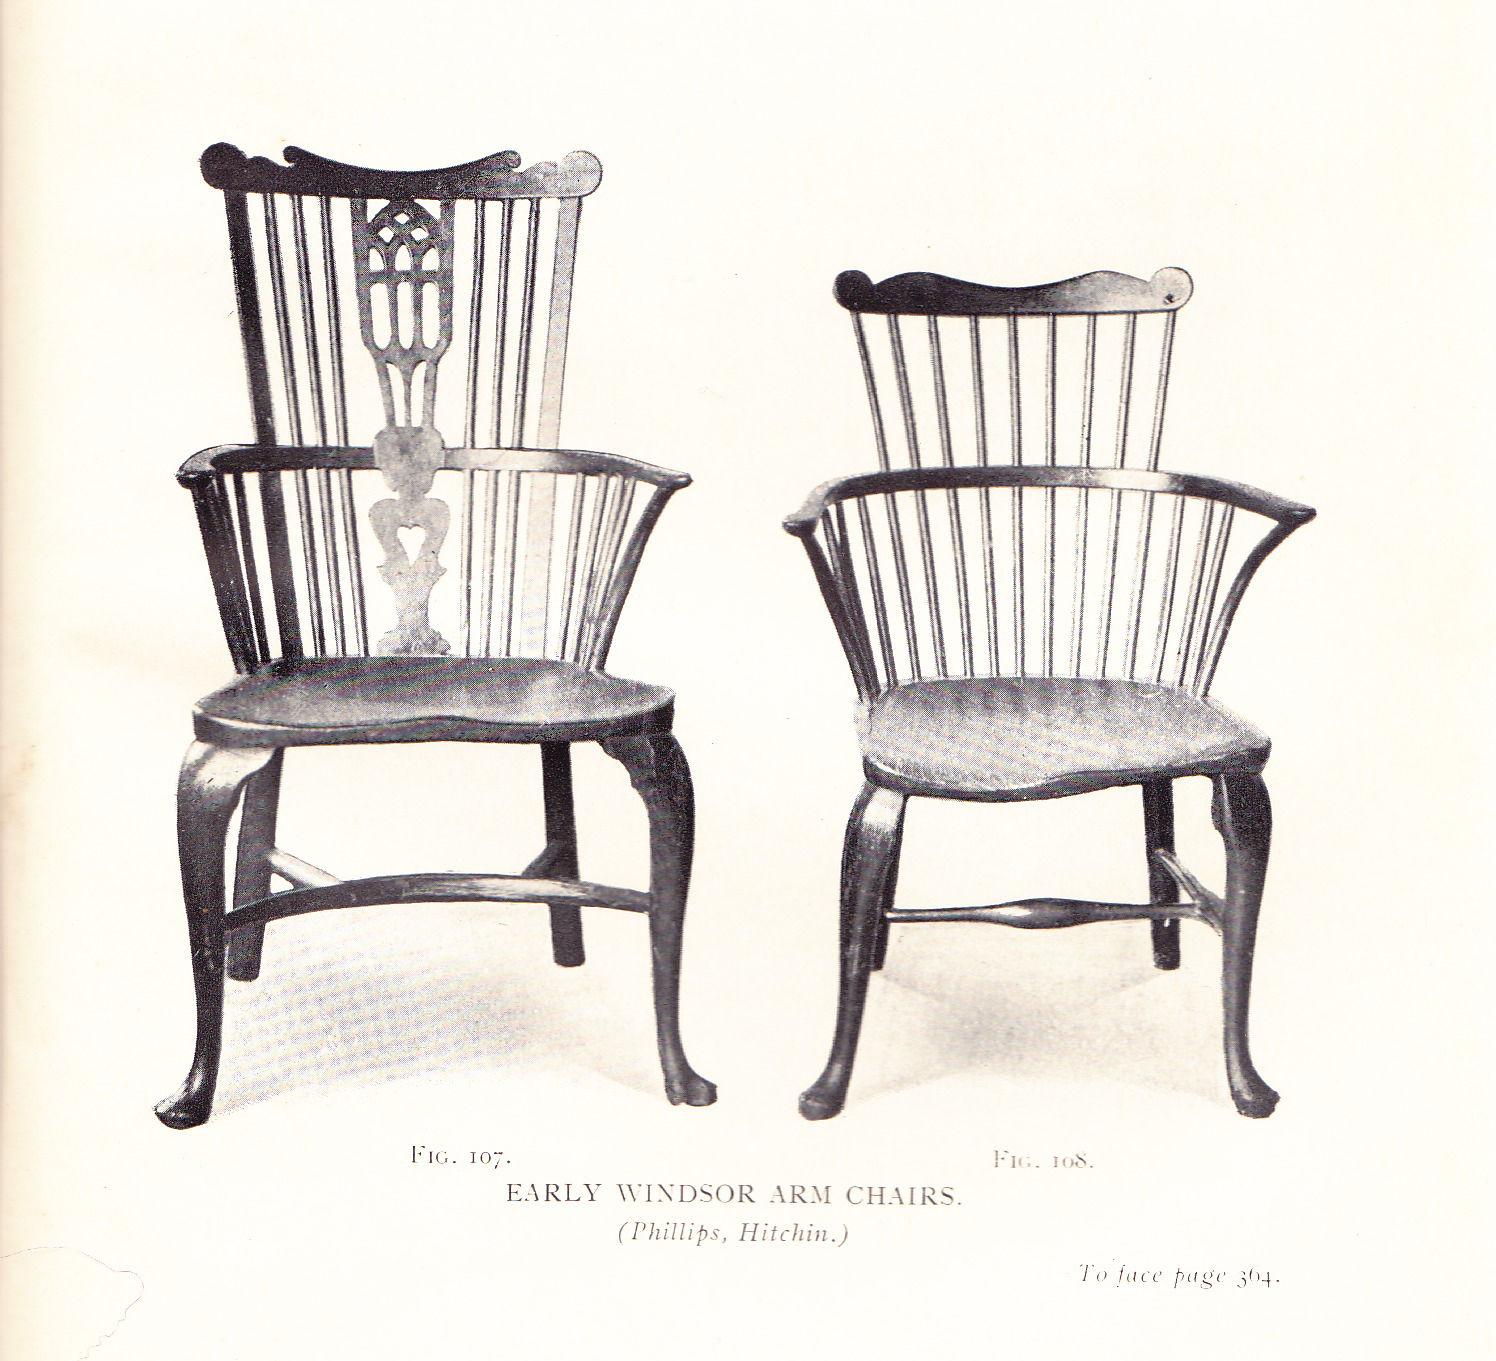 An Identical Thames Valley Windsor Arm Chair Is Illustrated In Fred  Burgess, Antique Furniture, 1919, Fig. 108 From Phillips Of Hitchin.